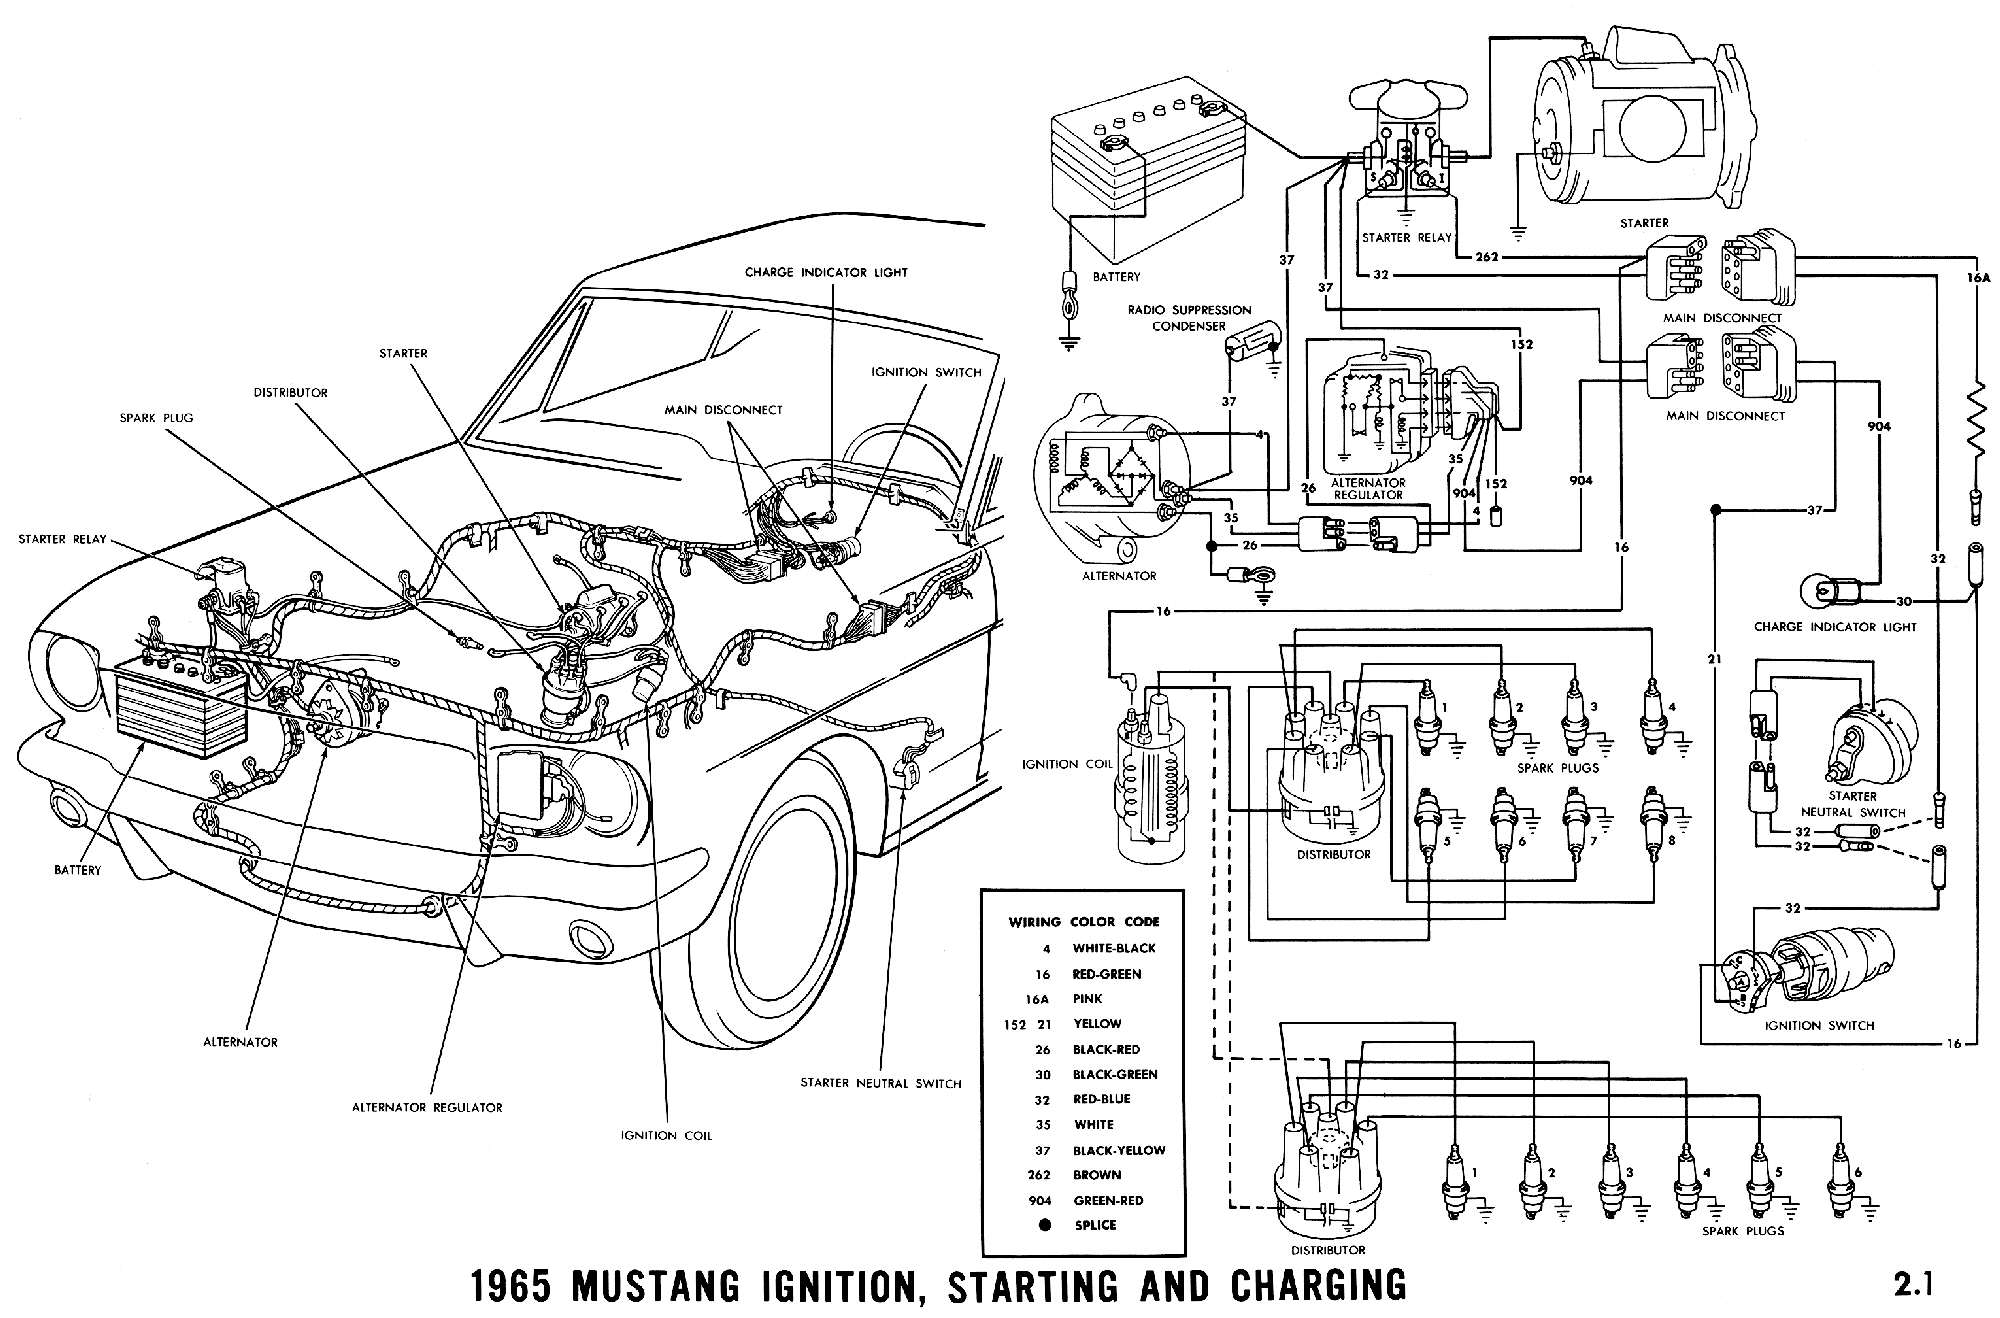 WRG-4500] Ac Wiring Diagram 68 Mustang on